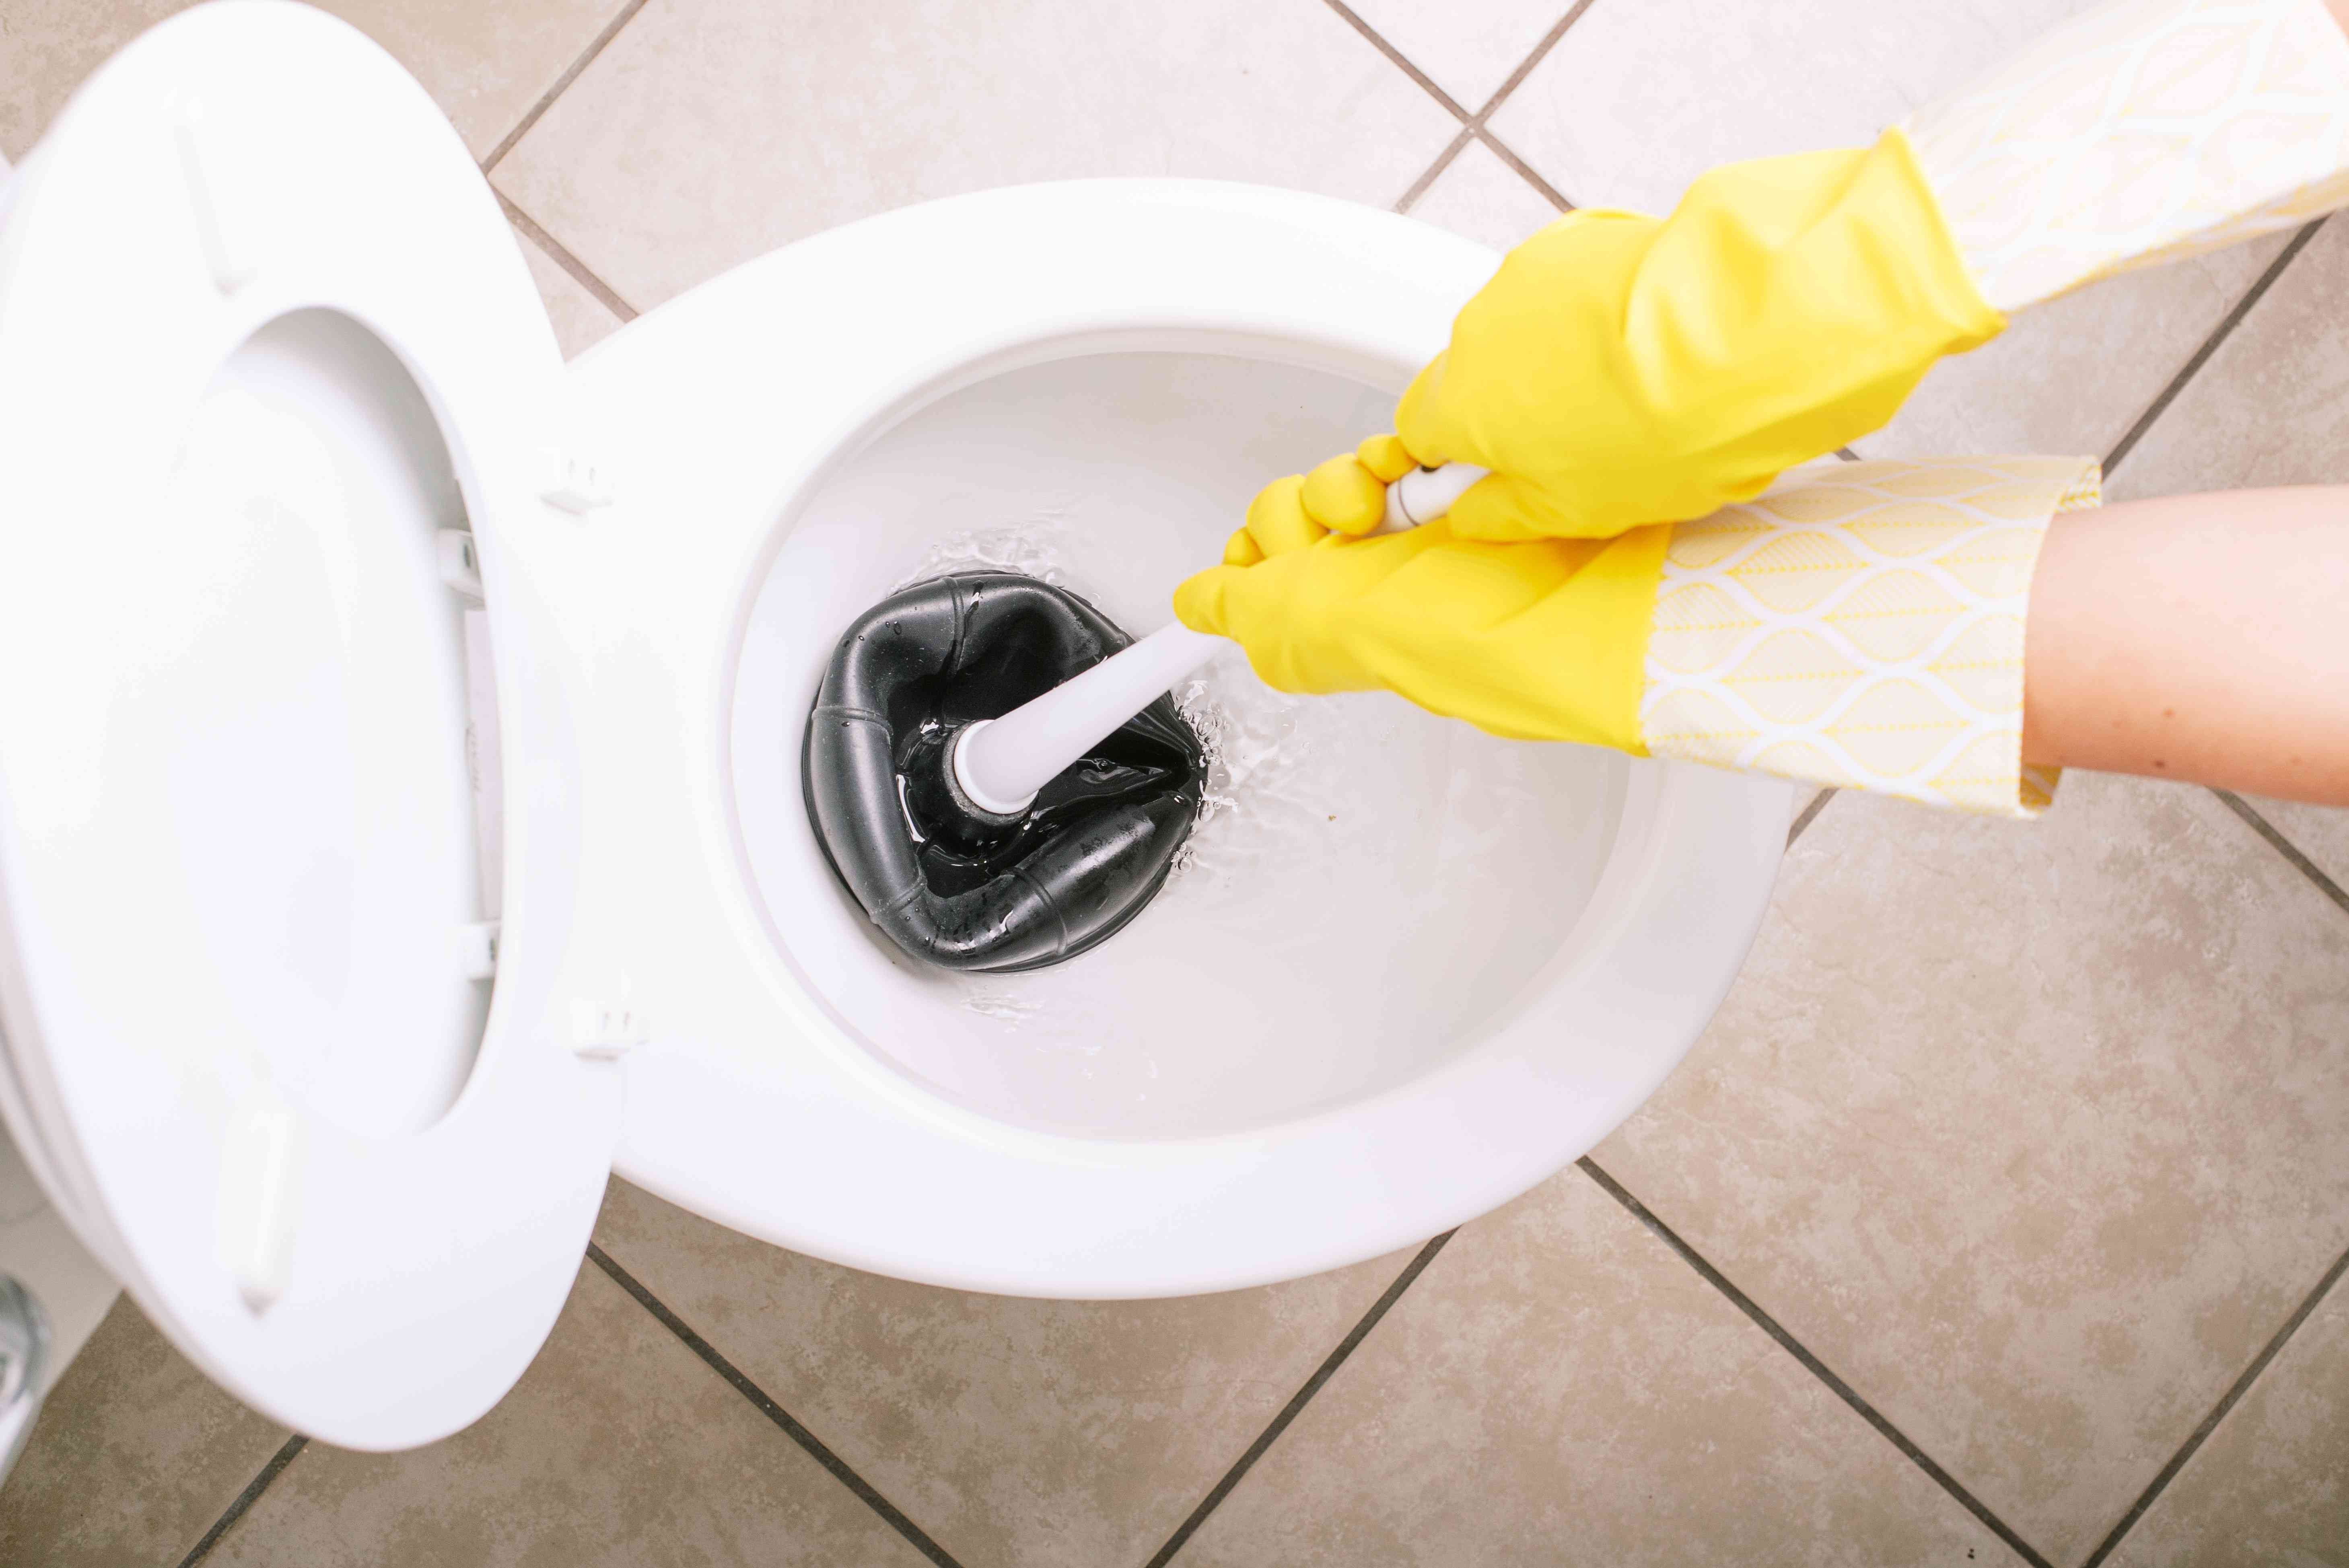 White ceramic toilet plunging out water with black plunger and yellow gloves